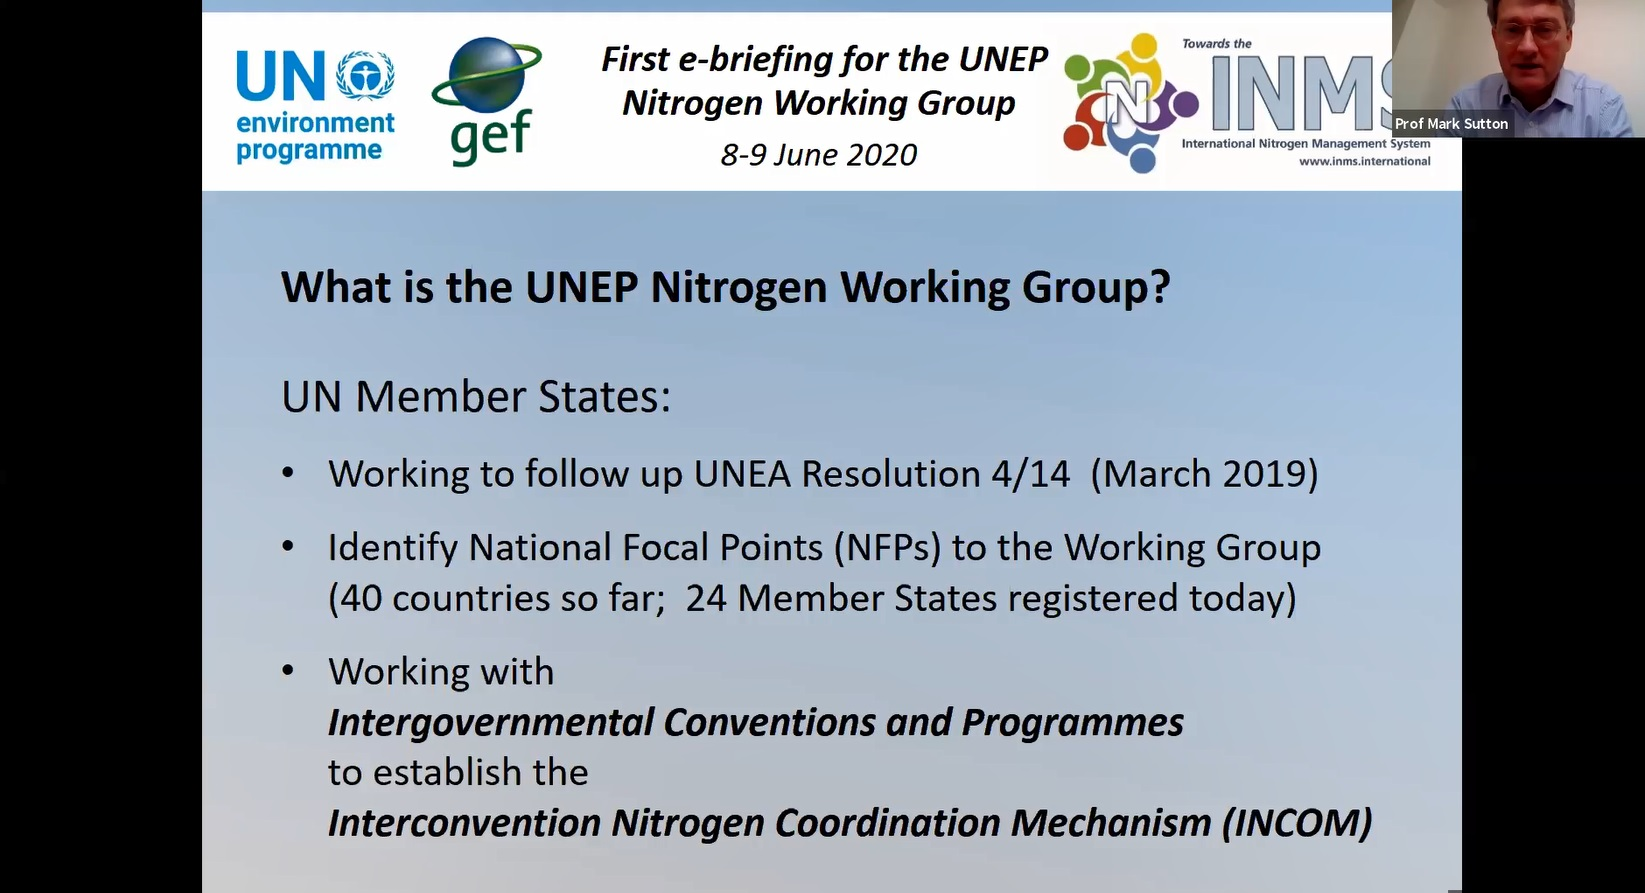 What is the Nitrogen Working Group?